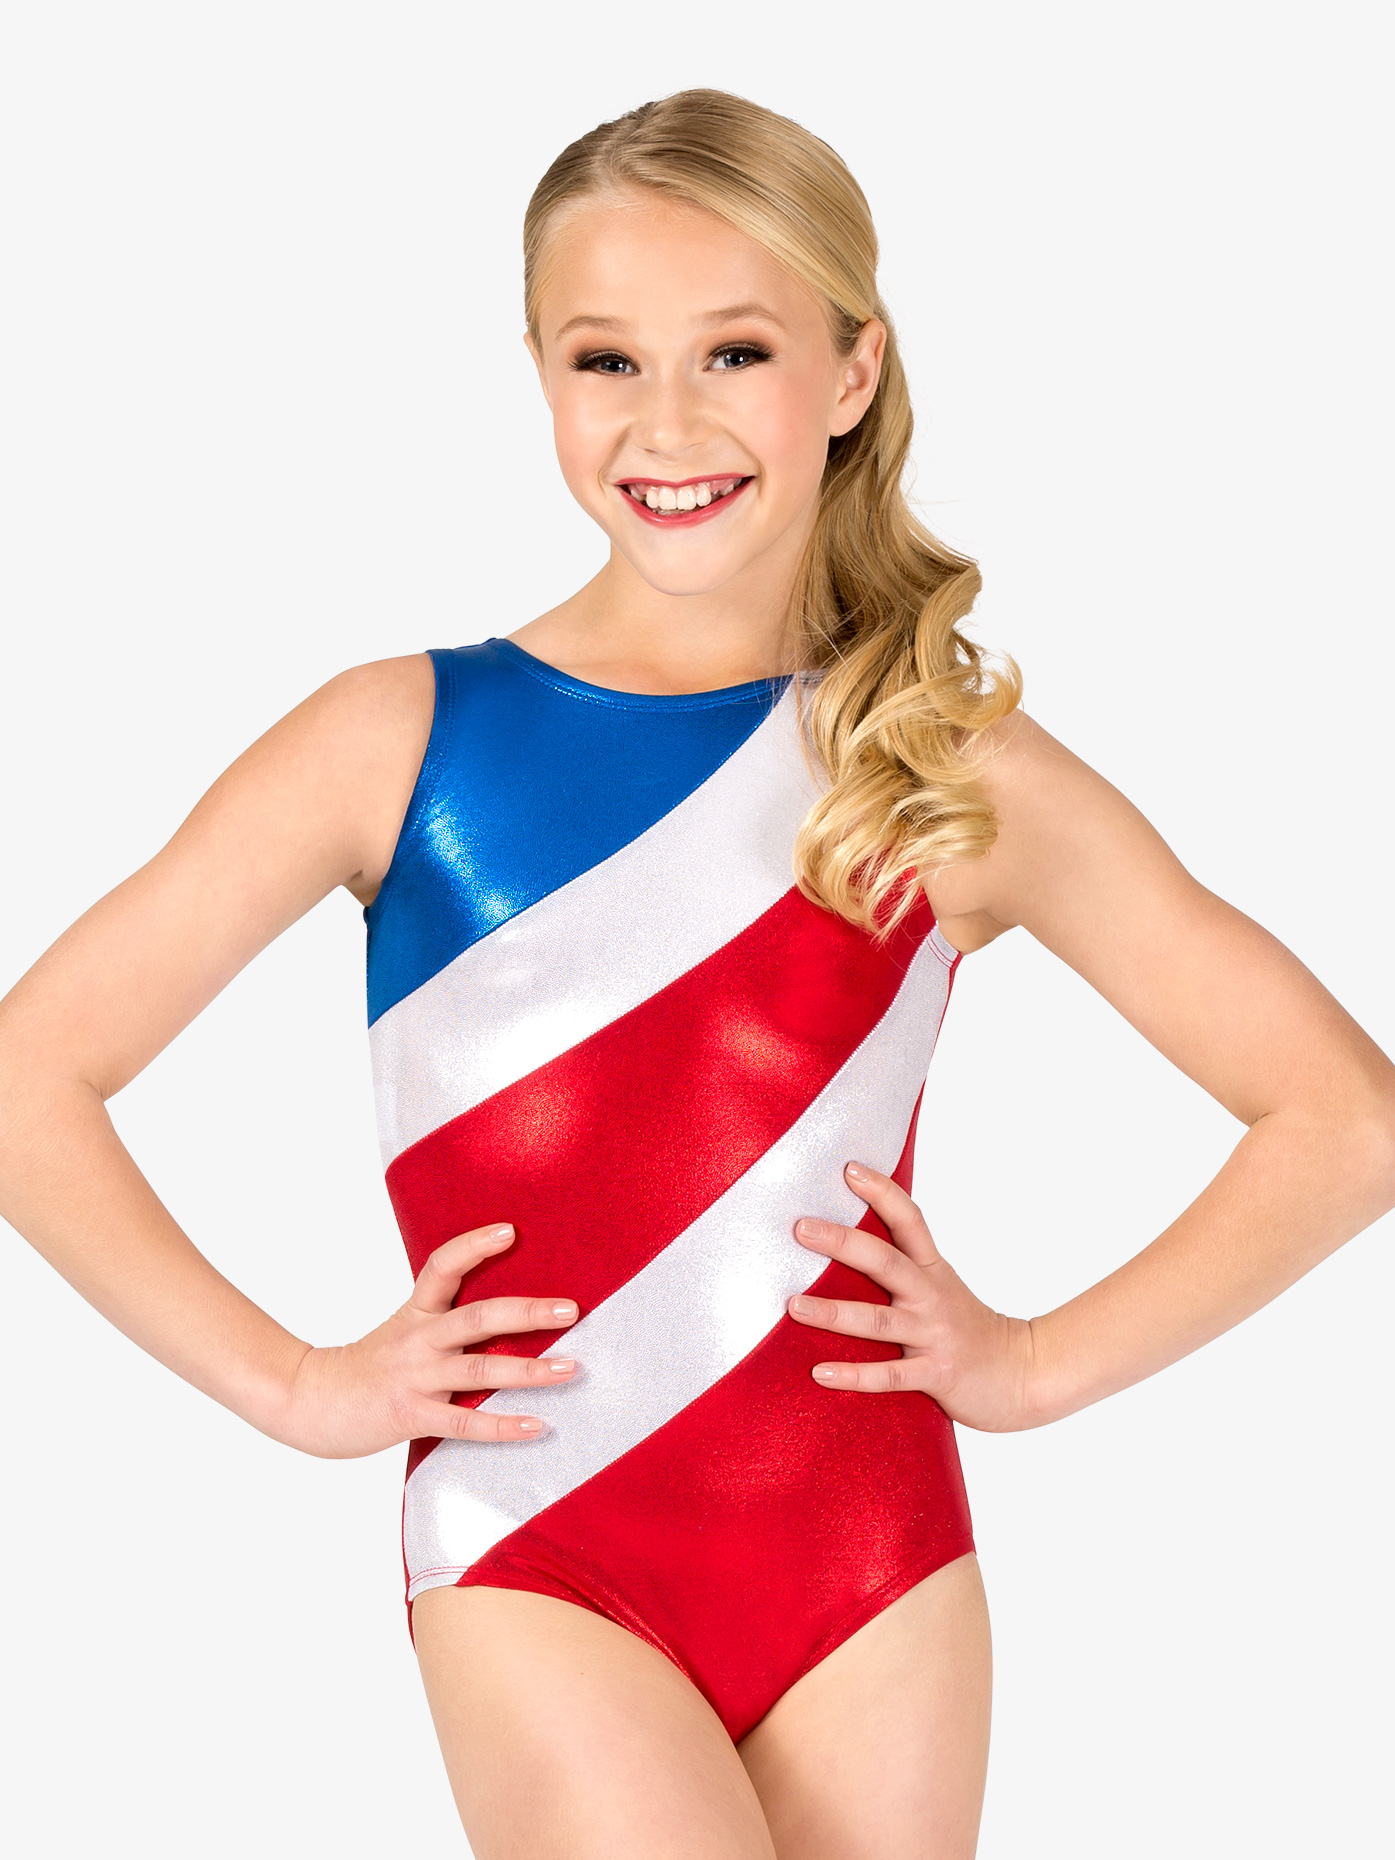 Perfect Balance Girls Gymnastics Diagonal Patriotic Print Tank Leotard G686C